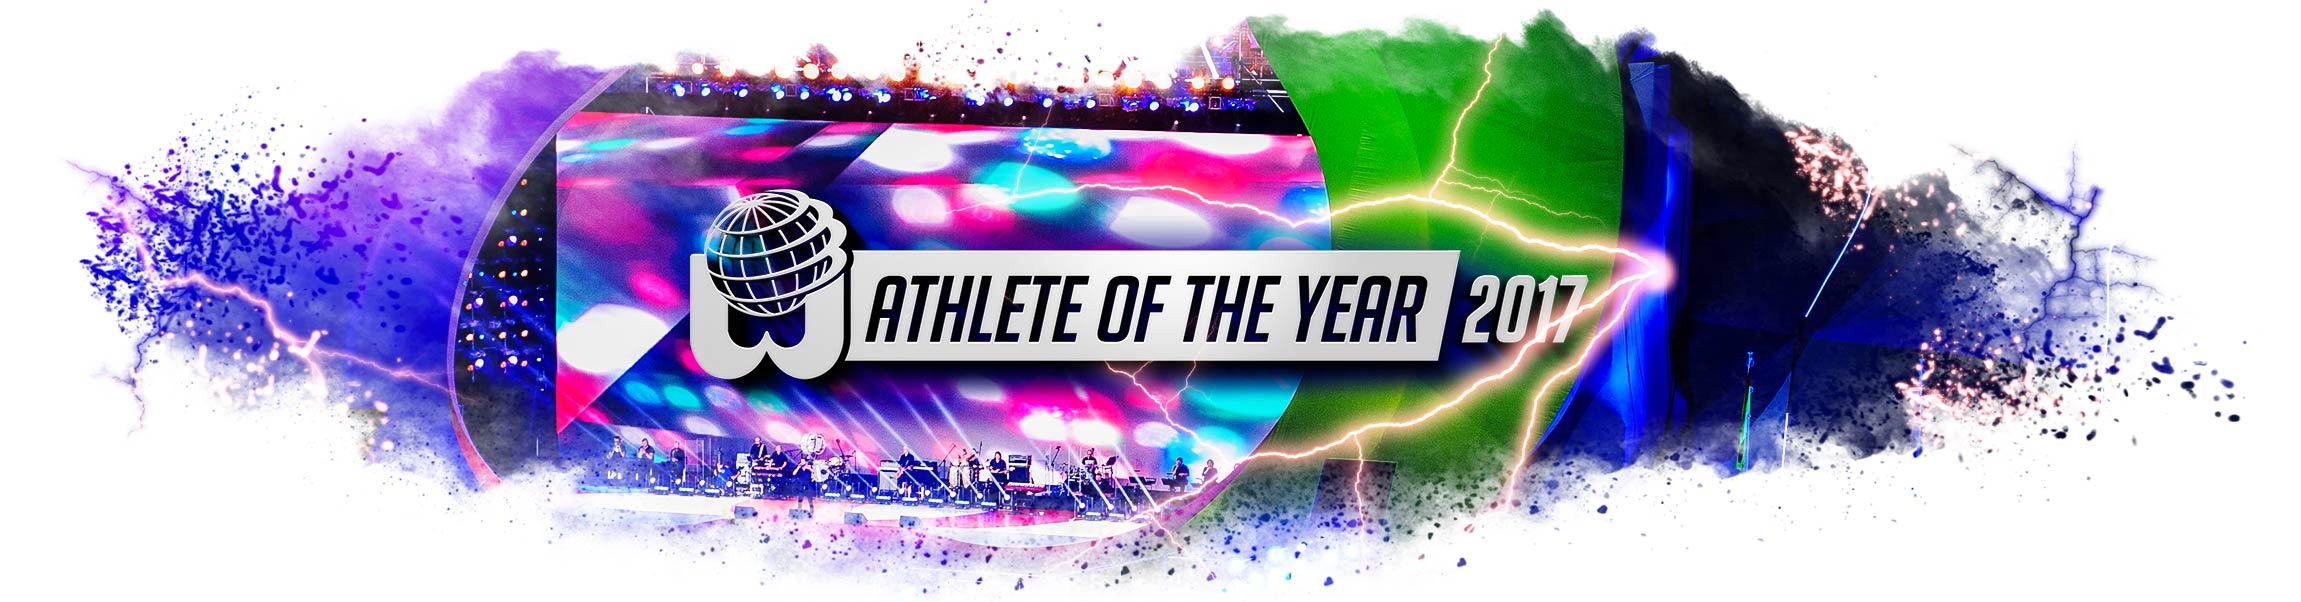 Athlete of the year 2017 vote banner